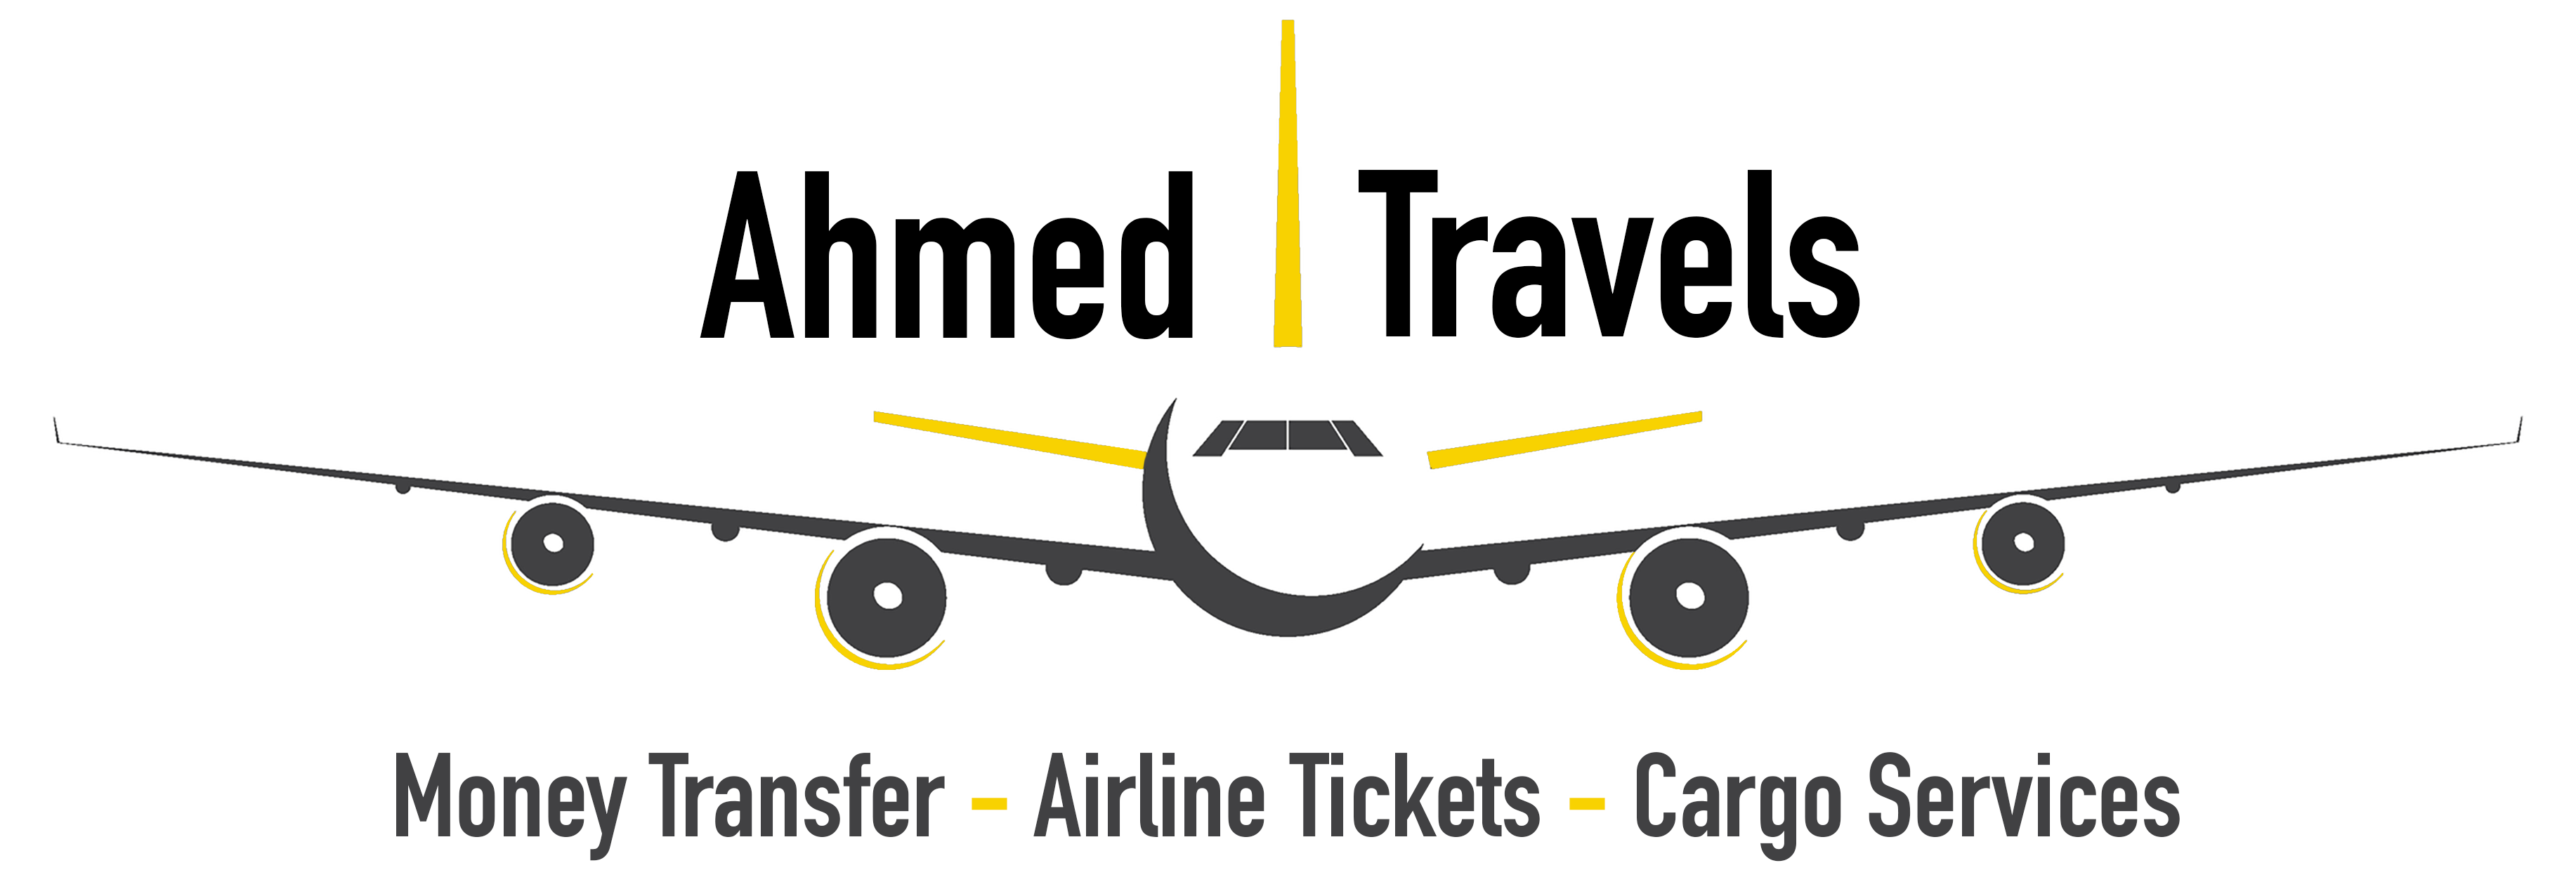 Ahmed Travels - Home